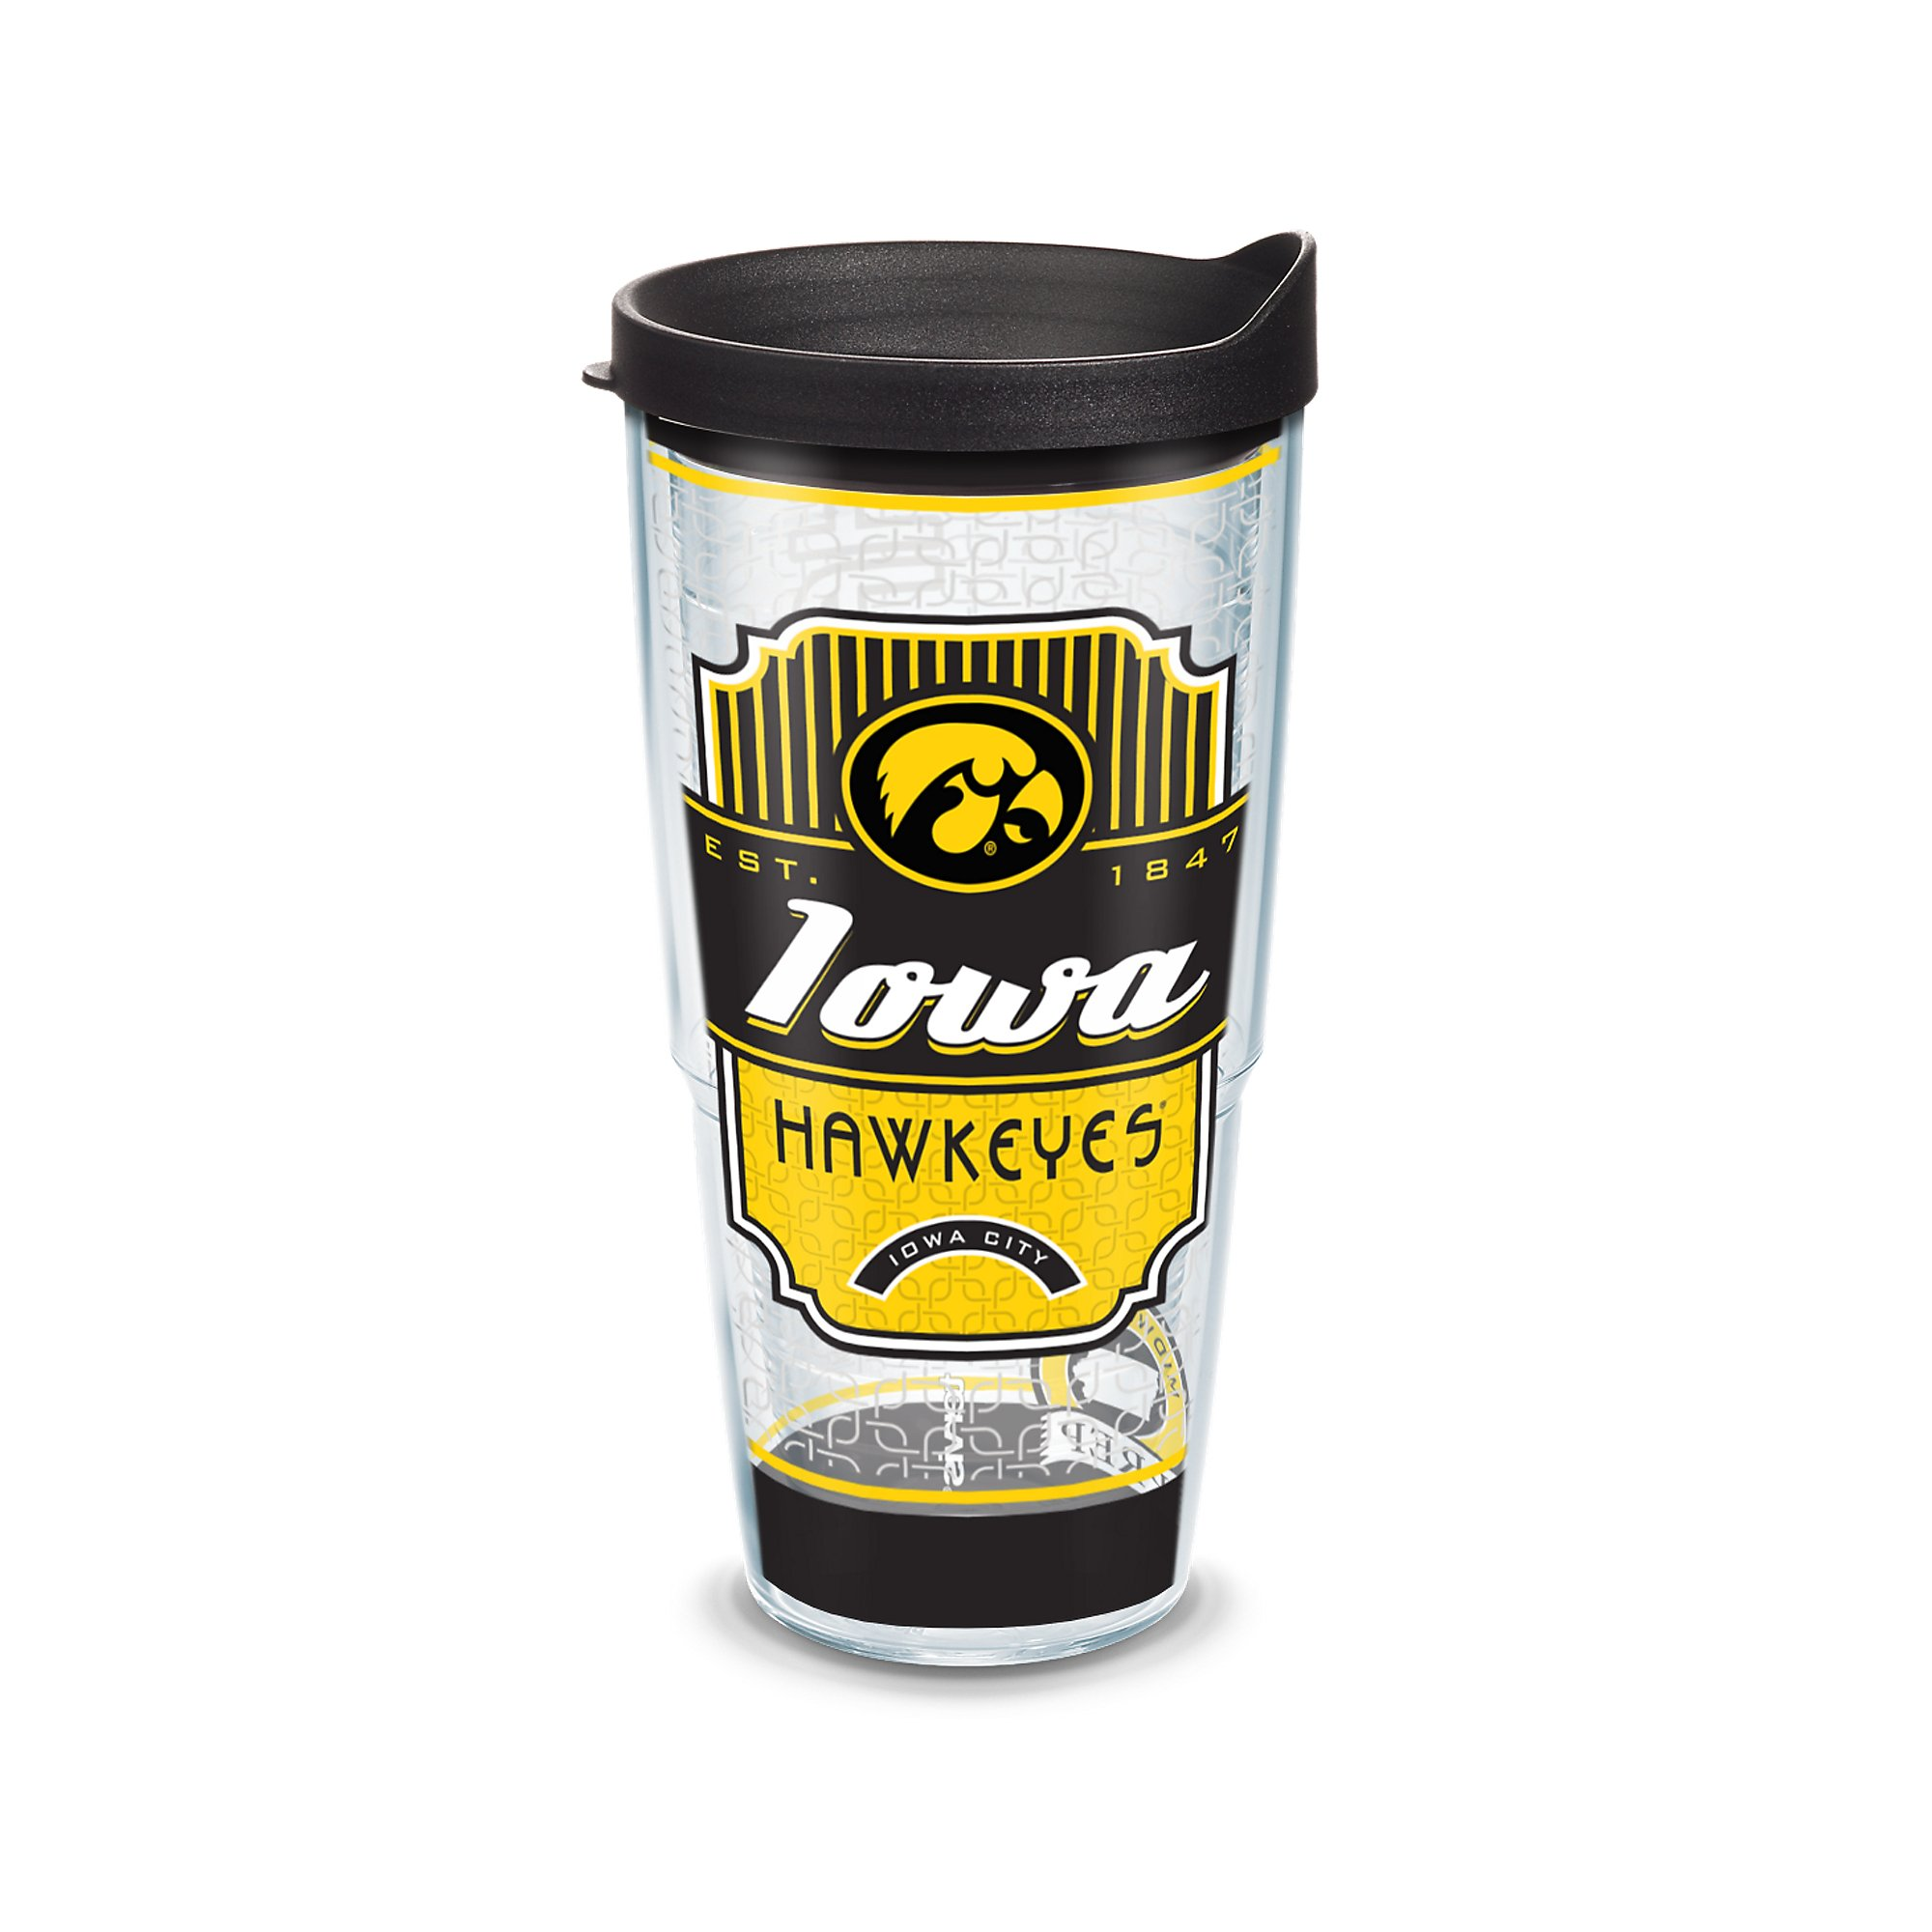 Tervis 1230308 Iowa Hawkeyes Pregame Prep Tumbler with Wrap and Black Lid 24oz, Clear